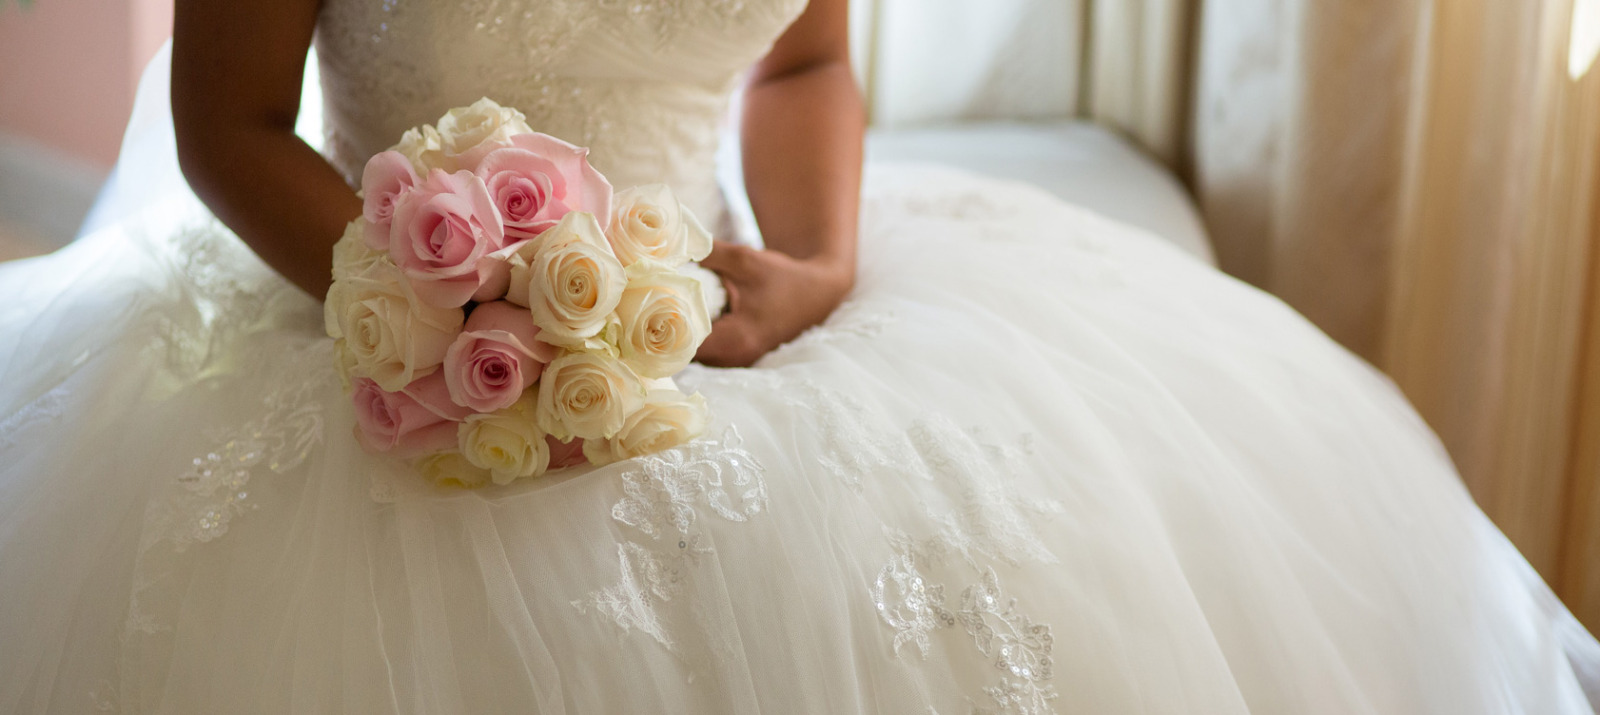 How much is wedding dress dry cleaning the best wedding for Dry clean wedding dress